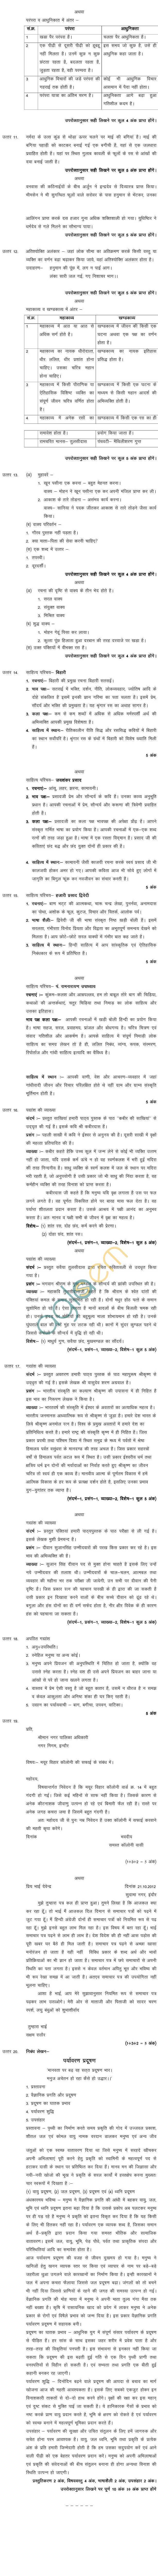 MP Board Class X Hindi Special Model Questions & Answers - Set 4